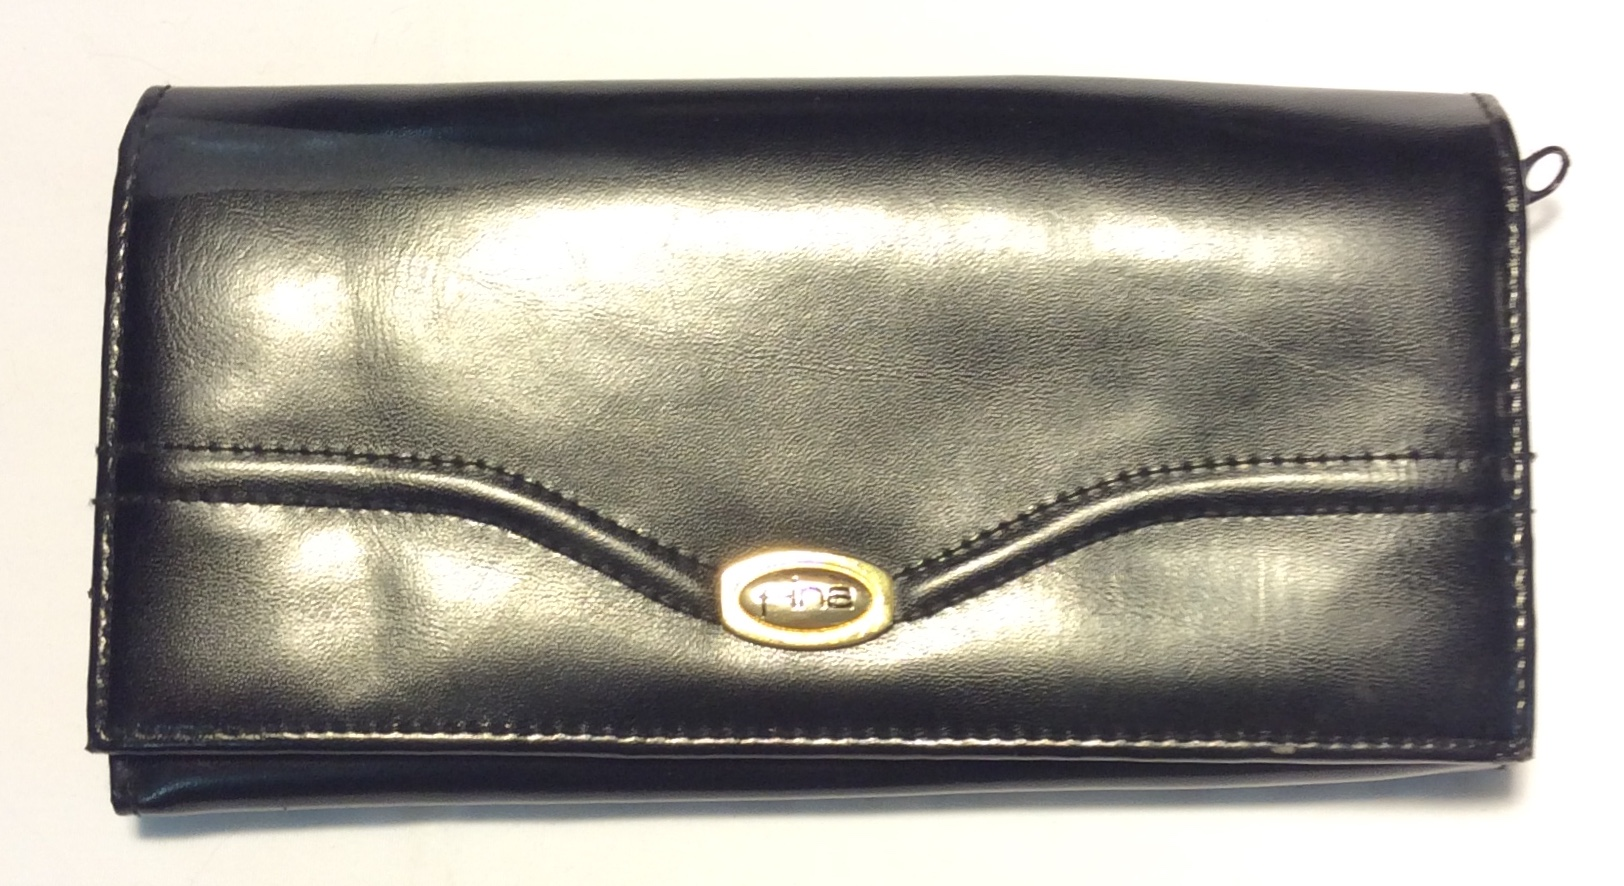 Fina Black leather wallet w/ curved